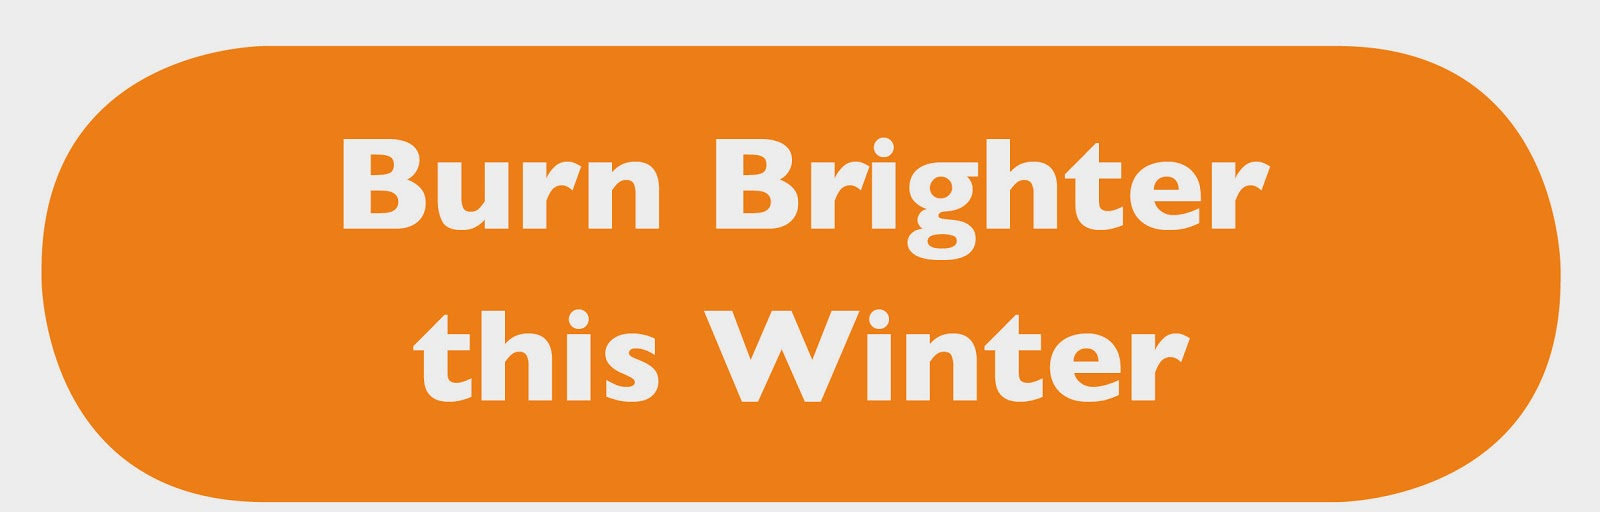 "Text ""Burn Brighter this Winter"" on orange background"